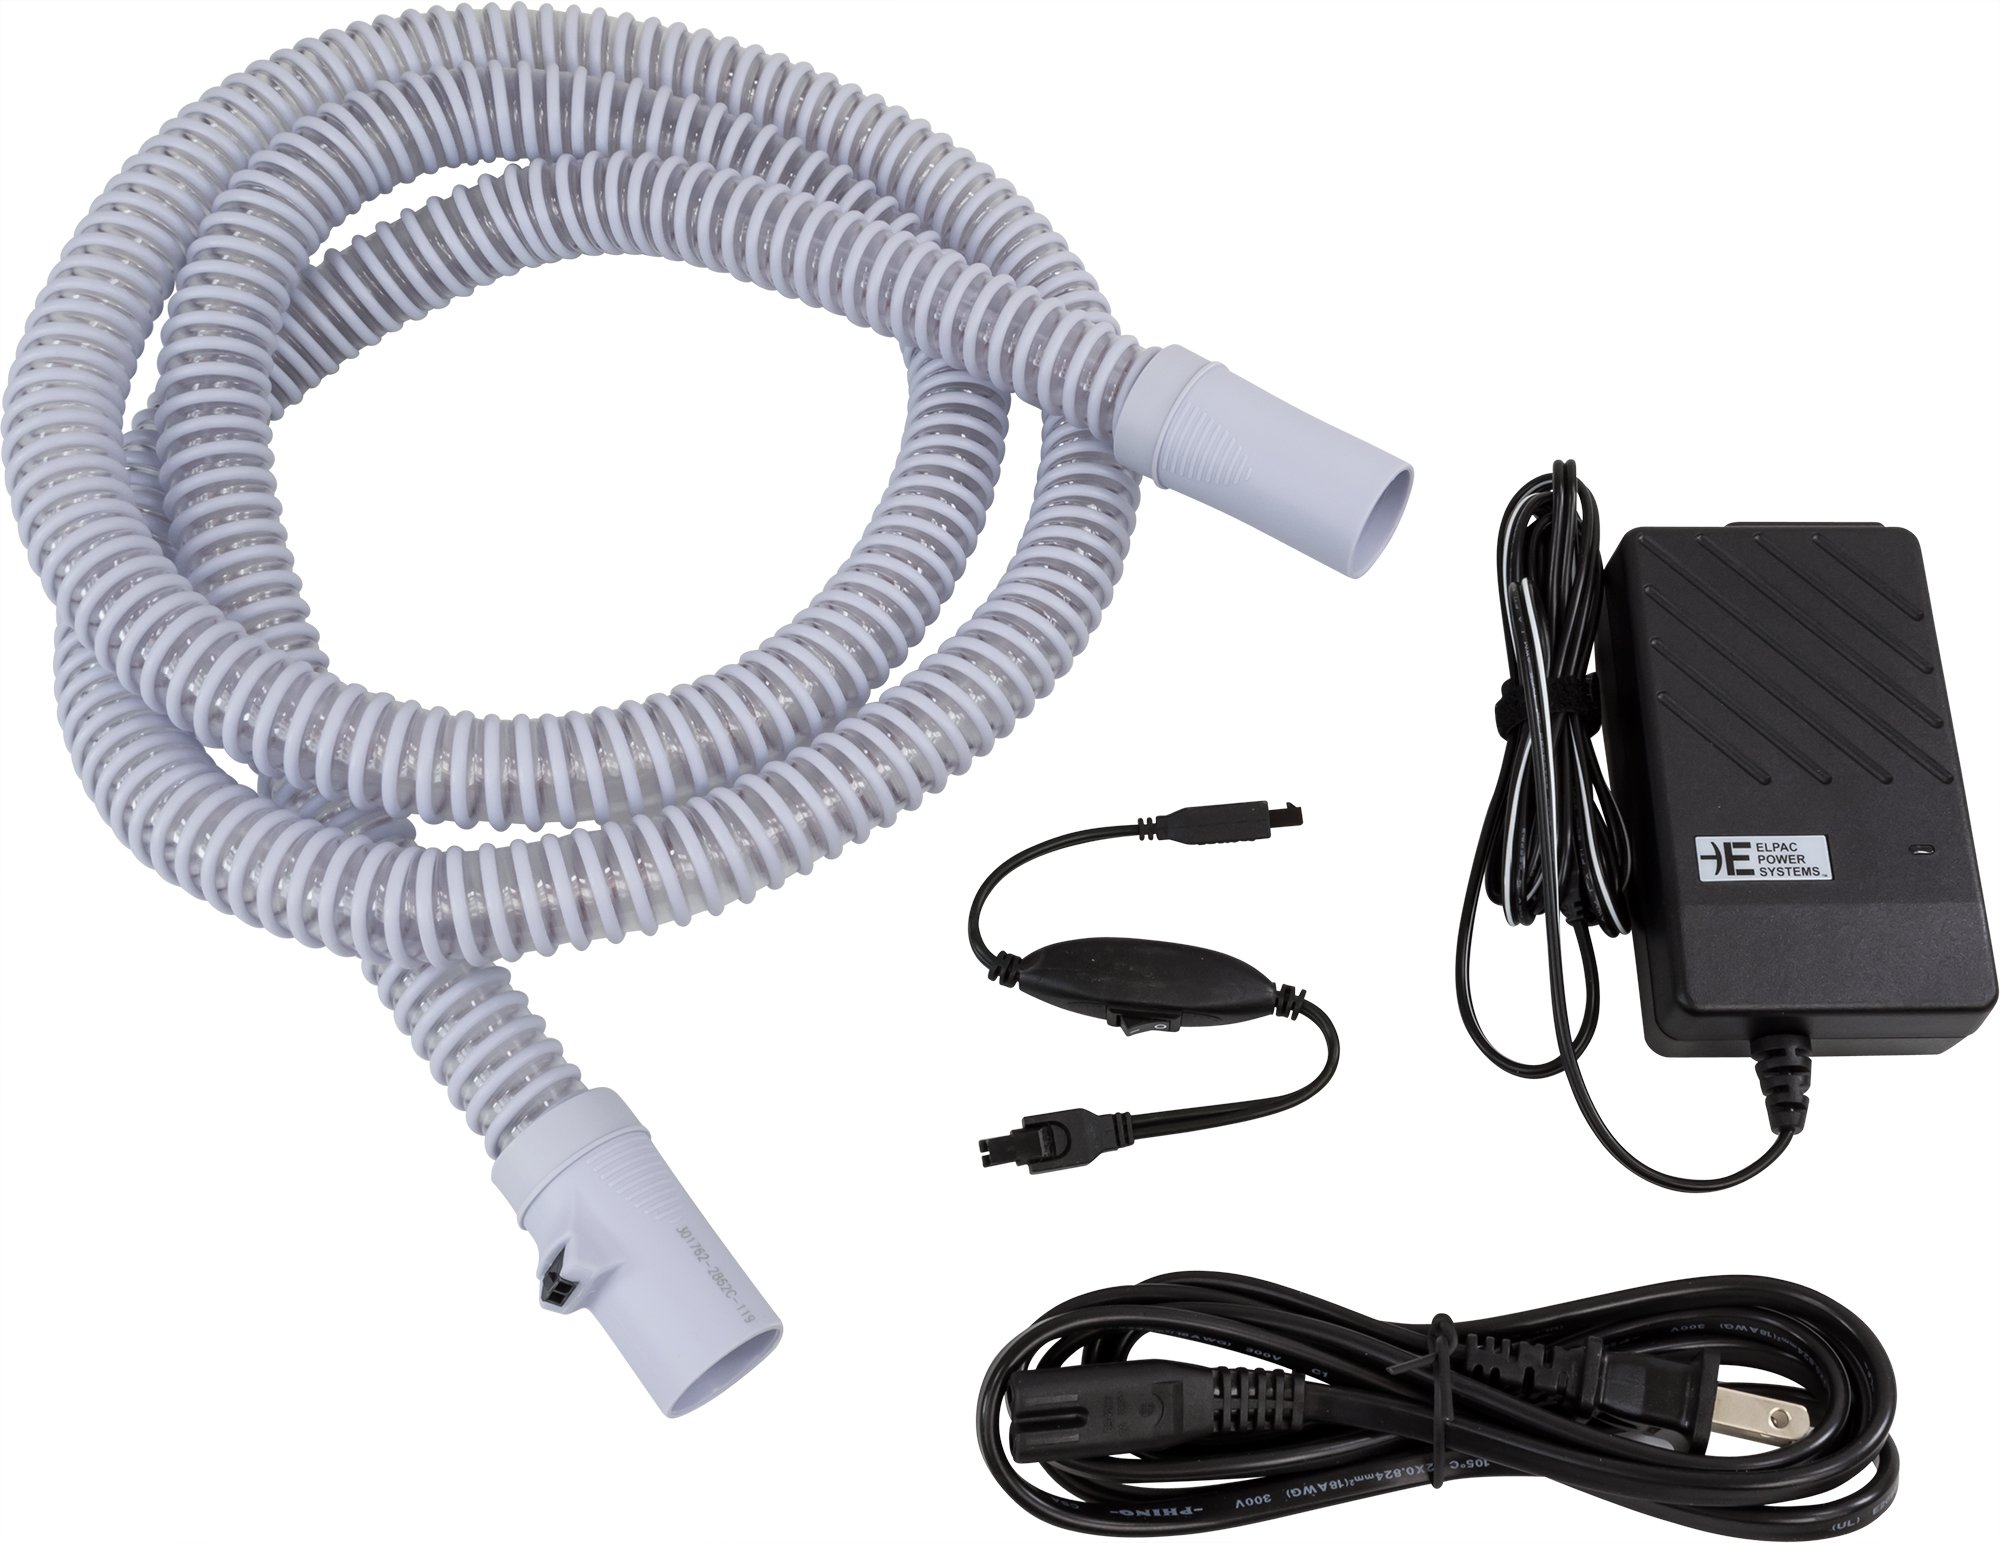 3B Medical 3BCL-1000 ComfortLine Heated Tubing Rainout Control System for CPAP Masks